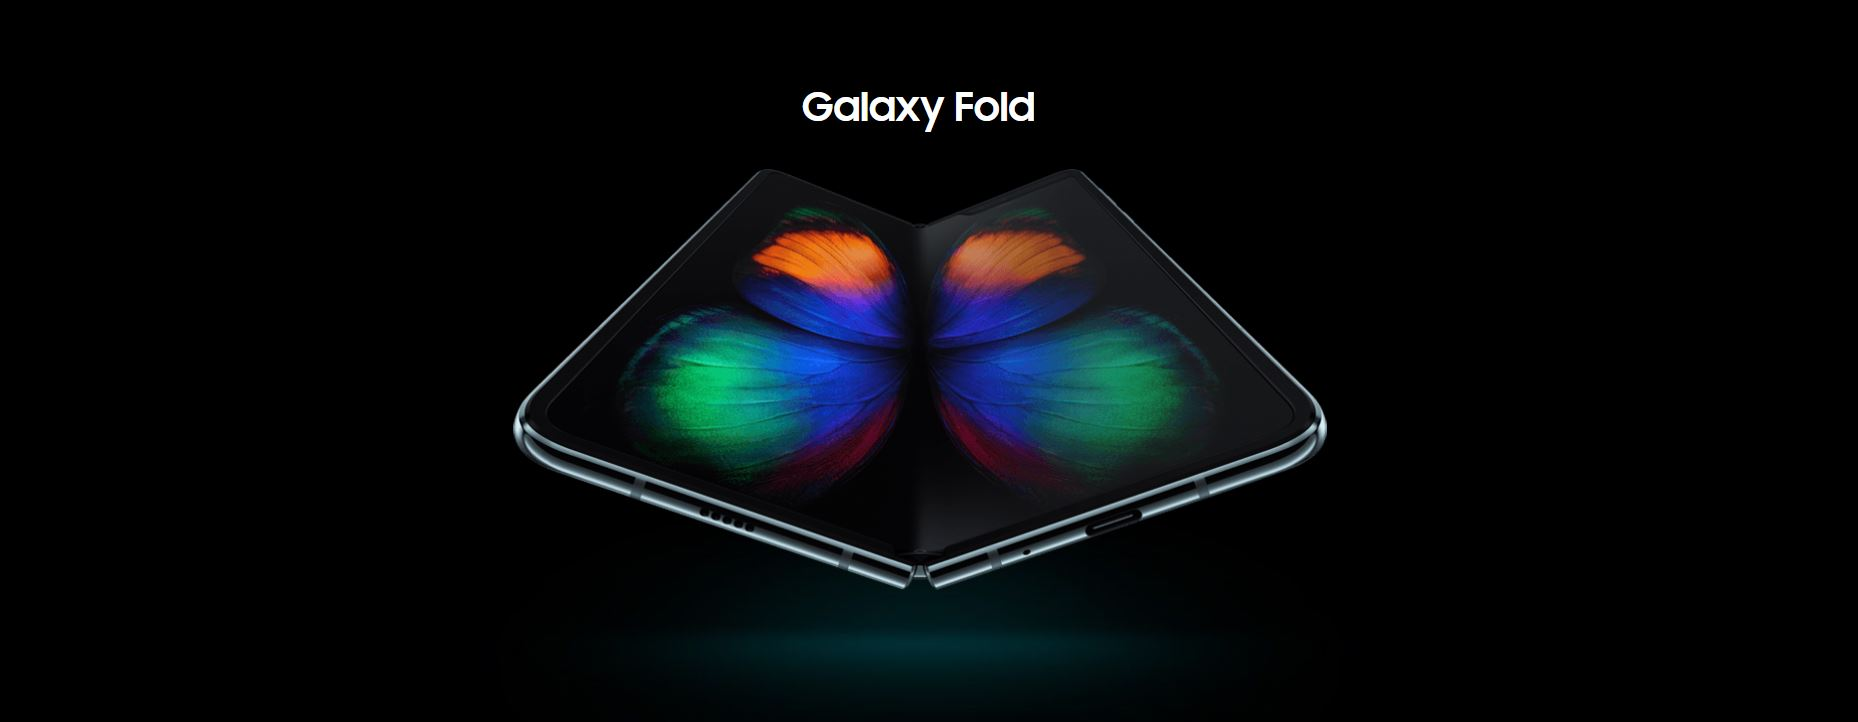 samsung-galaxy-fold-official-price-specs-release-date-available-philippines